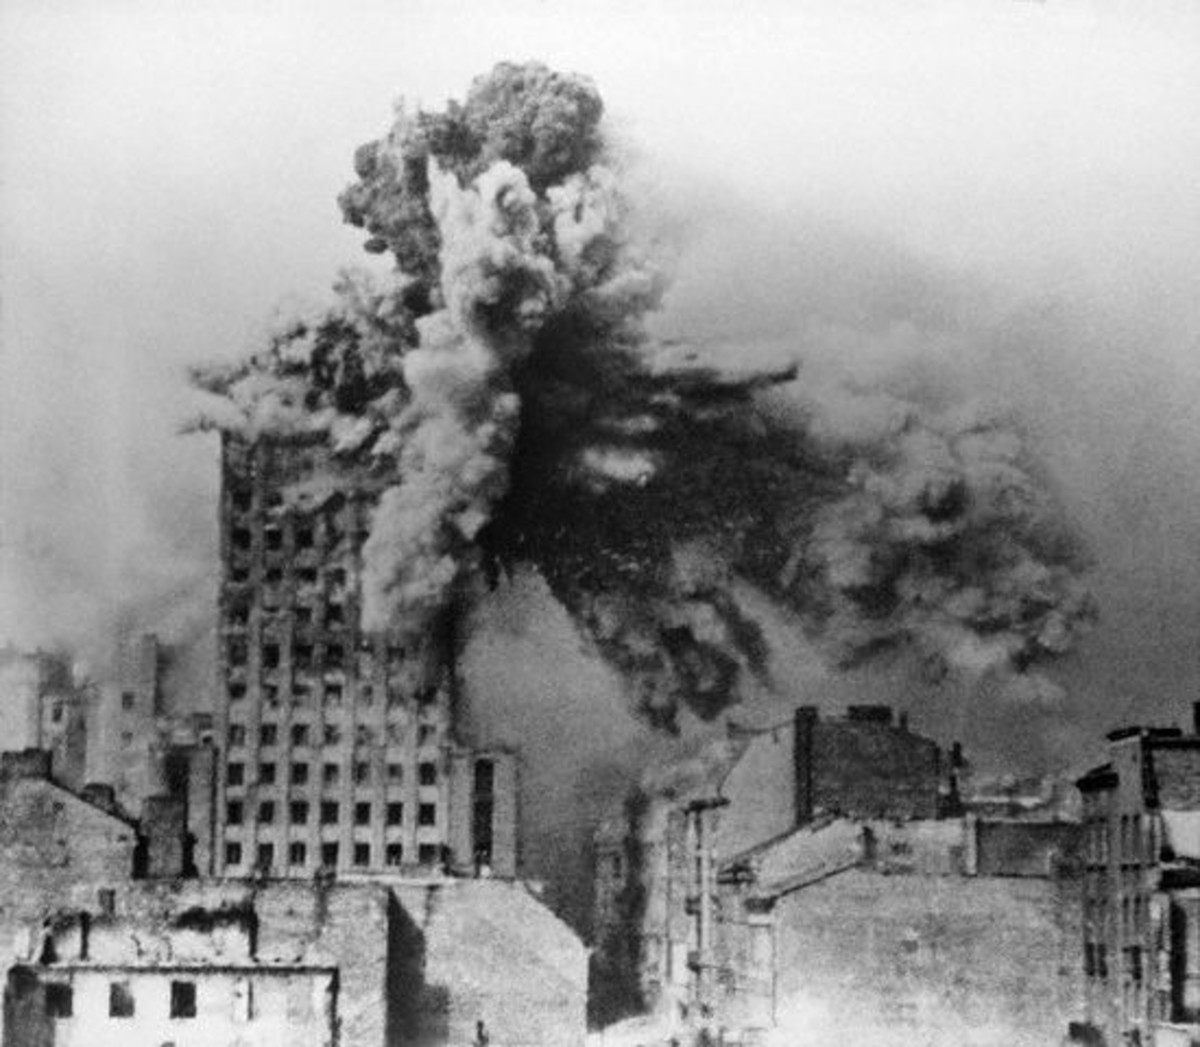 WW2: Warsaw Uprising. On August 28 the Prudential building was hit by 2-ton mortar shell from a Karl Morser (mortar).